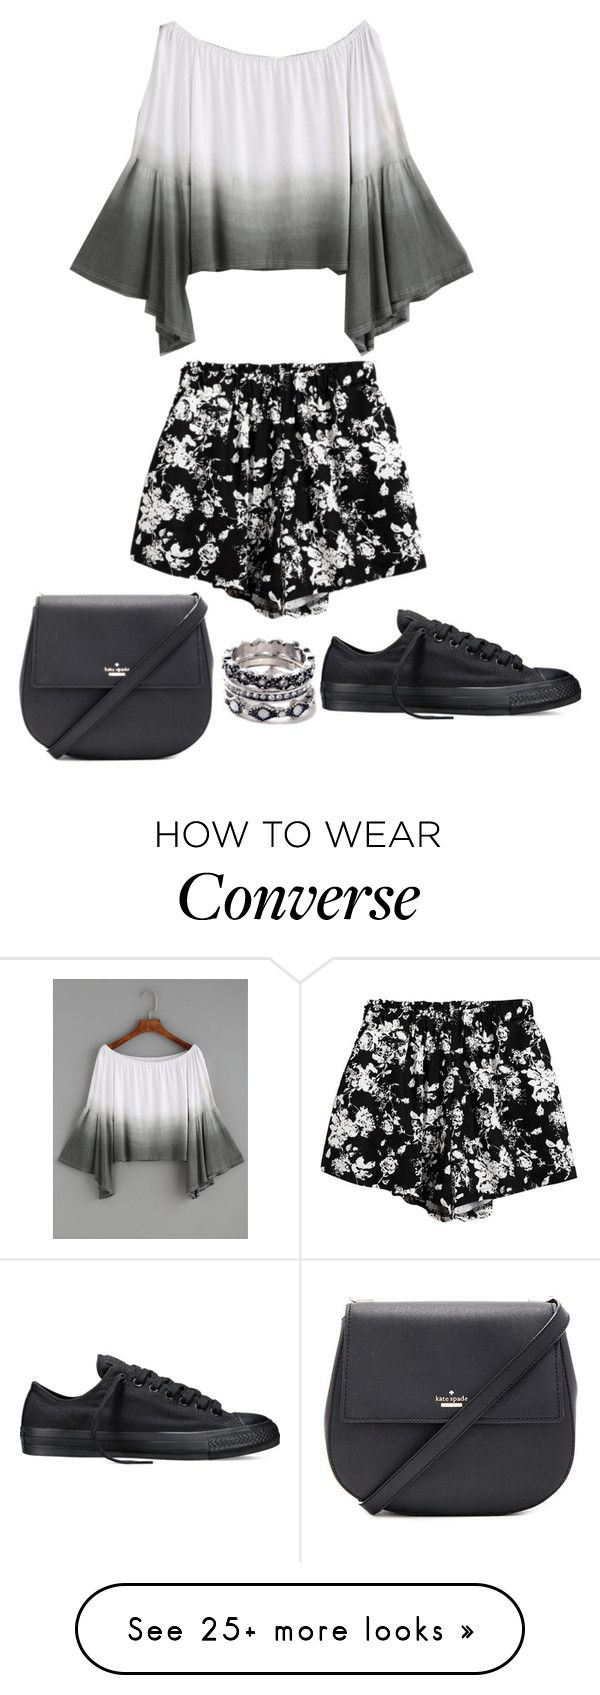 """Untitled #8905"" by beatrizibelo on Polyvore featuring Chicnova Fashion, Kate Spade and Converse"